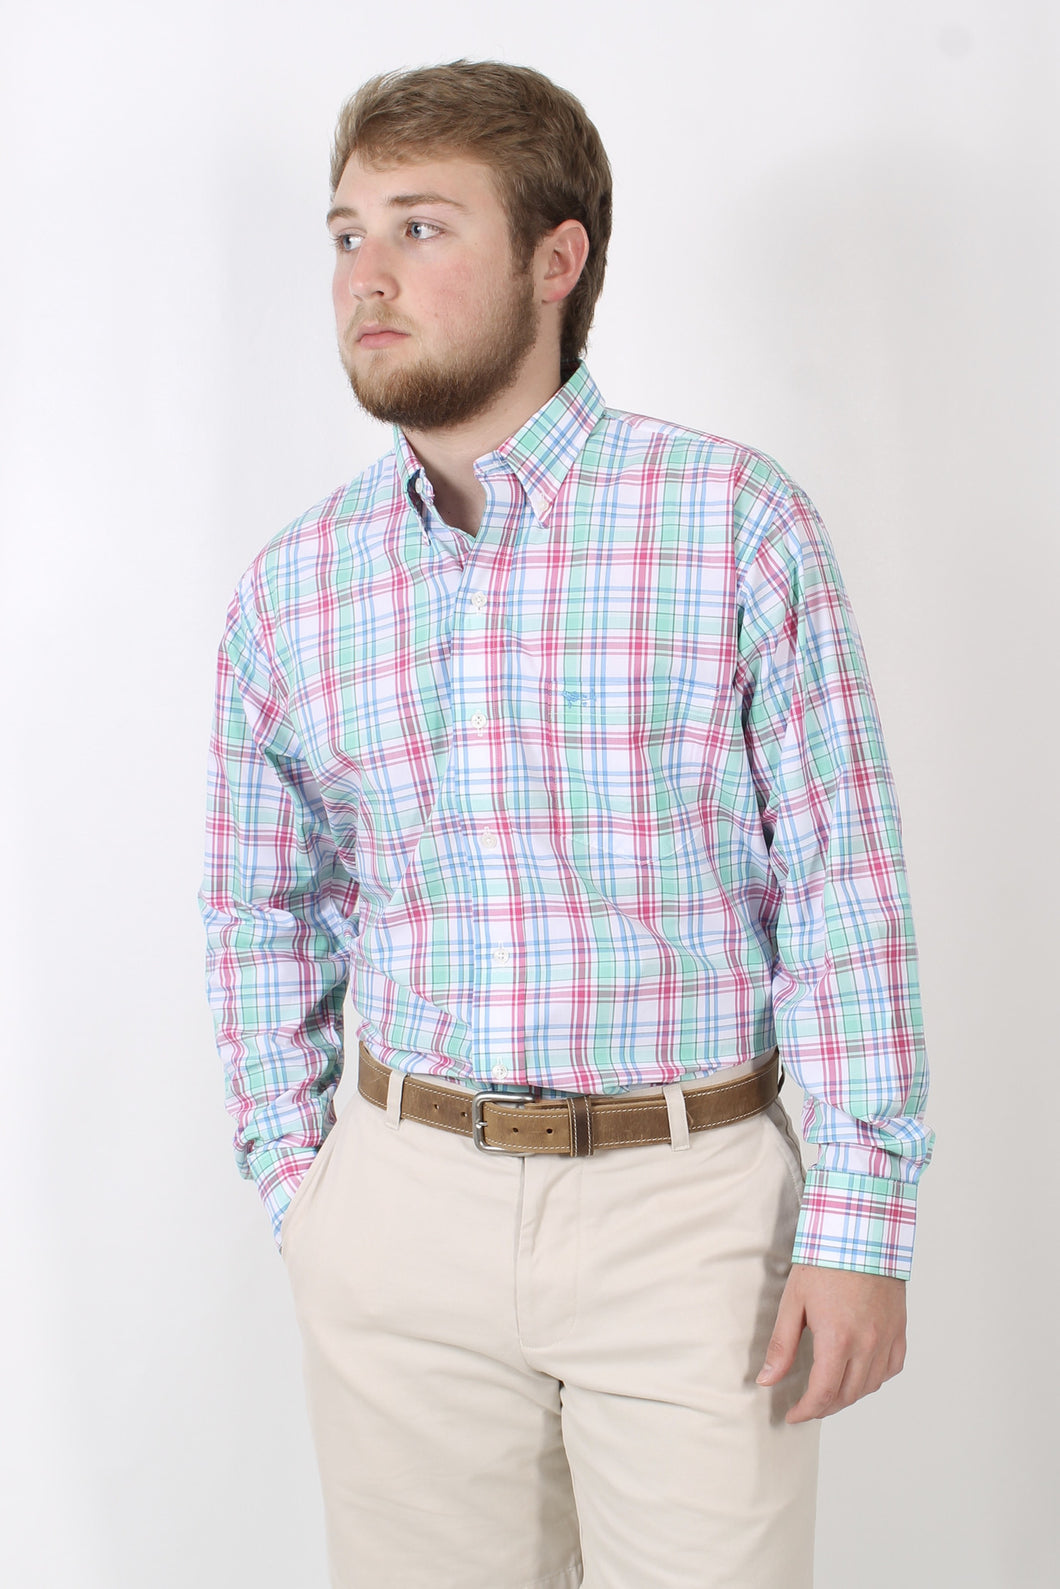 Pink/Green Plaid Dress Shirt- Coastal Cotton Button Down Shirt Front